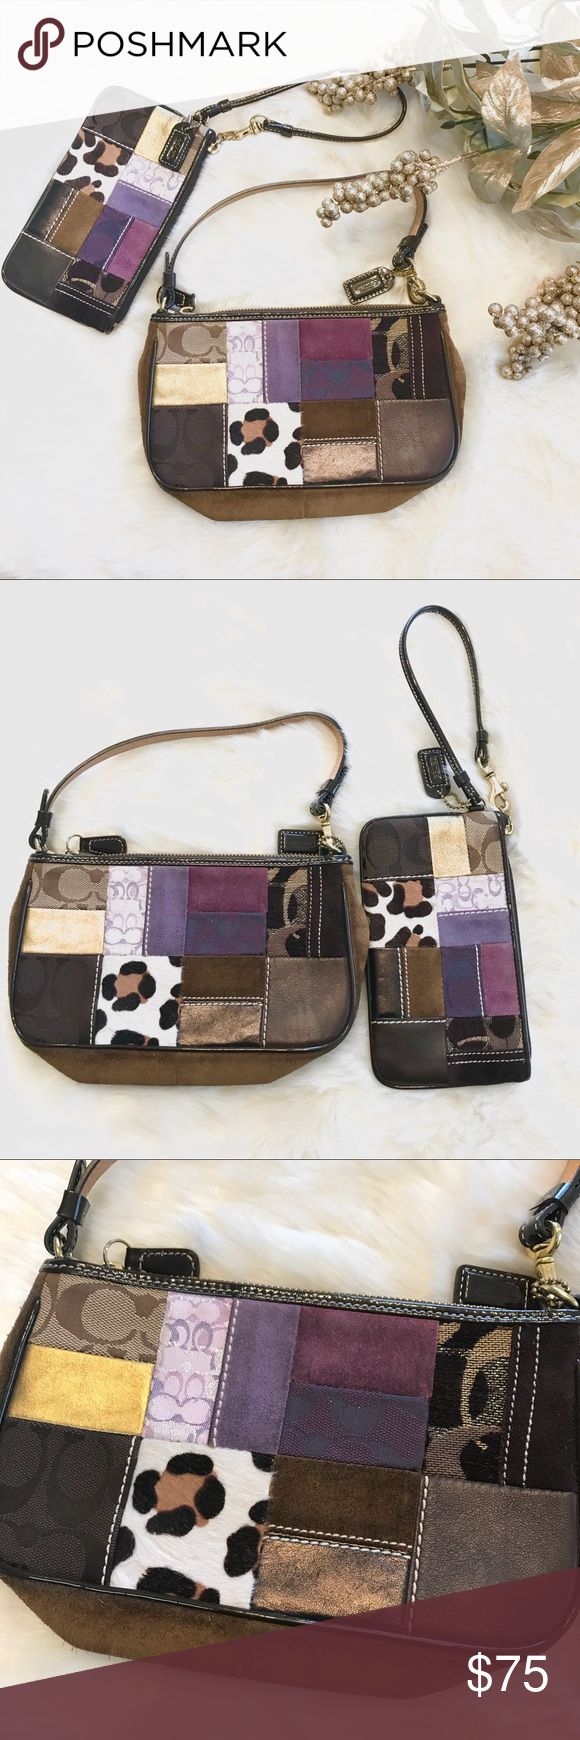 """Coach Patchwork Animal Print Demi bag & wristlet These two beauties are in wonderful Pre-loved condition. The demi bag features chocolate suede trim, a patent leather handle, beautiful animal print, suede and signature C patchwork body and a purple interior with one pocket. The wristlet also features a patent leather handle and purple interior. The suede does have some wear but is overall in great condition. Demo bag stats: drop: 6"""". L: 8""""/ W: 2""""/ D: 6"""". Wristlet: 6"""". L: 7""""/ D: 4""""   Each bag…"""